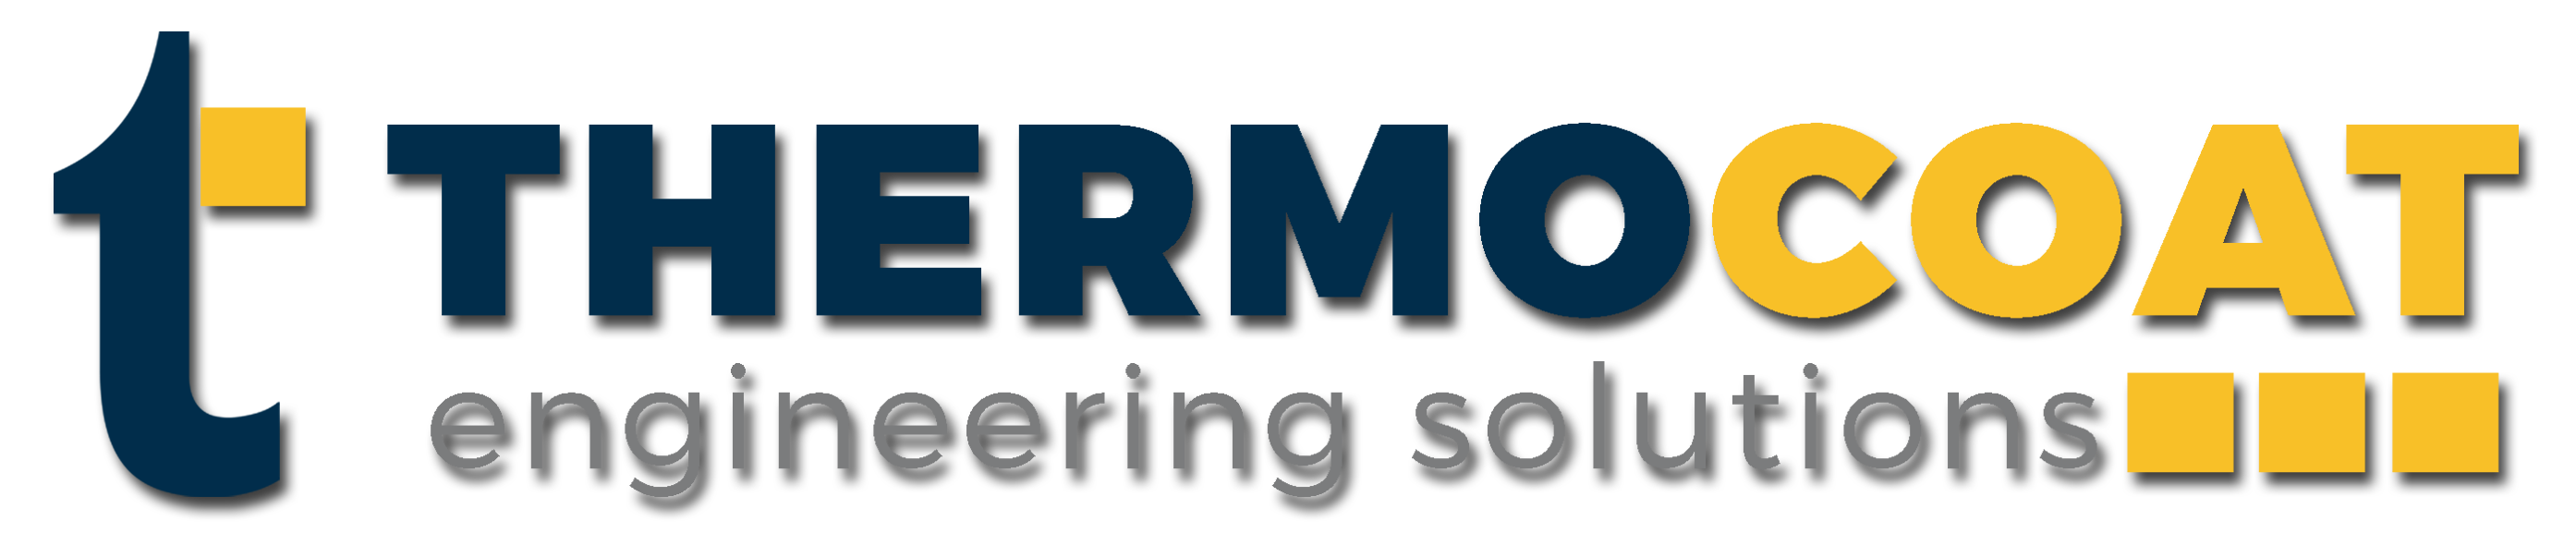 Thermocoat Engineering Solutions